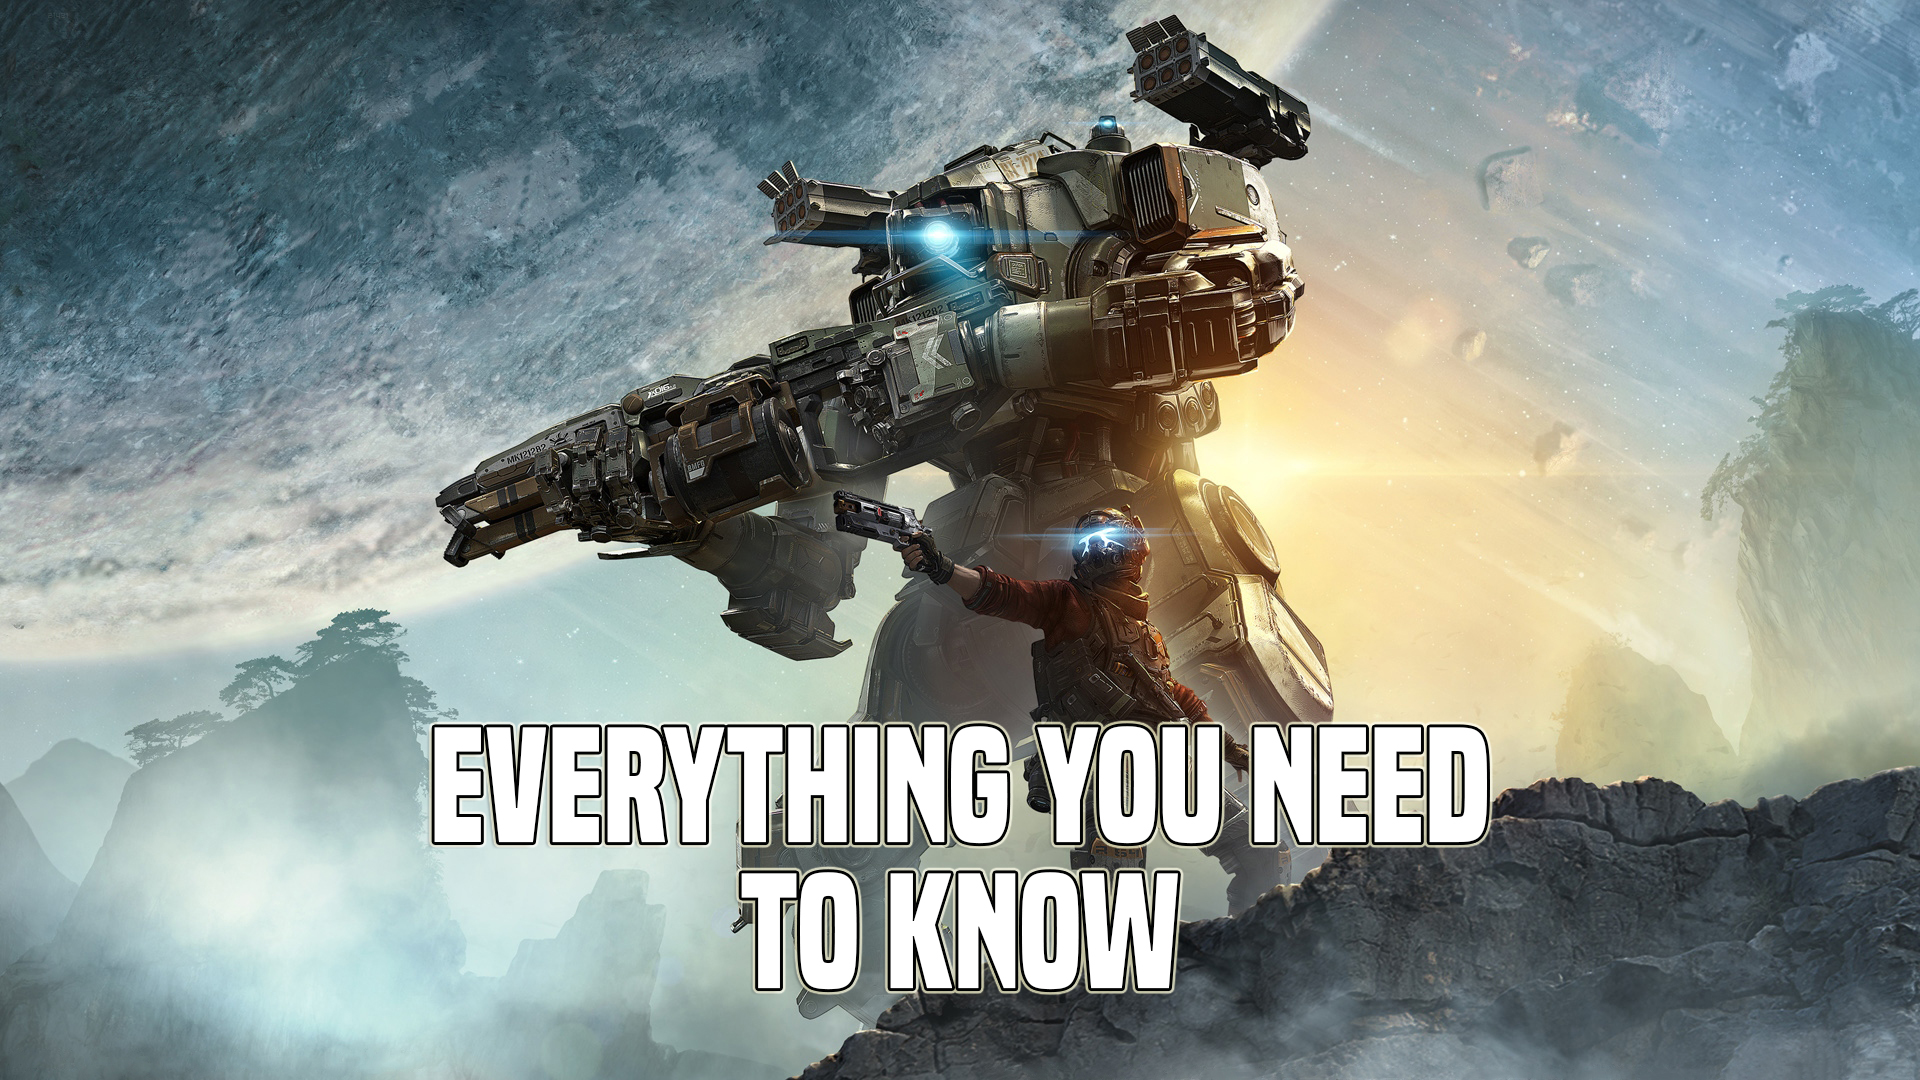 Titanfall 2 - Everything You Need to Know